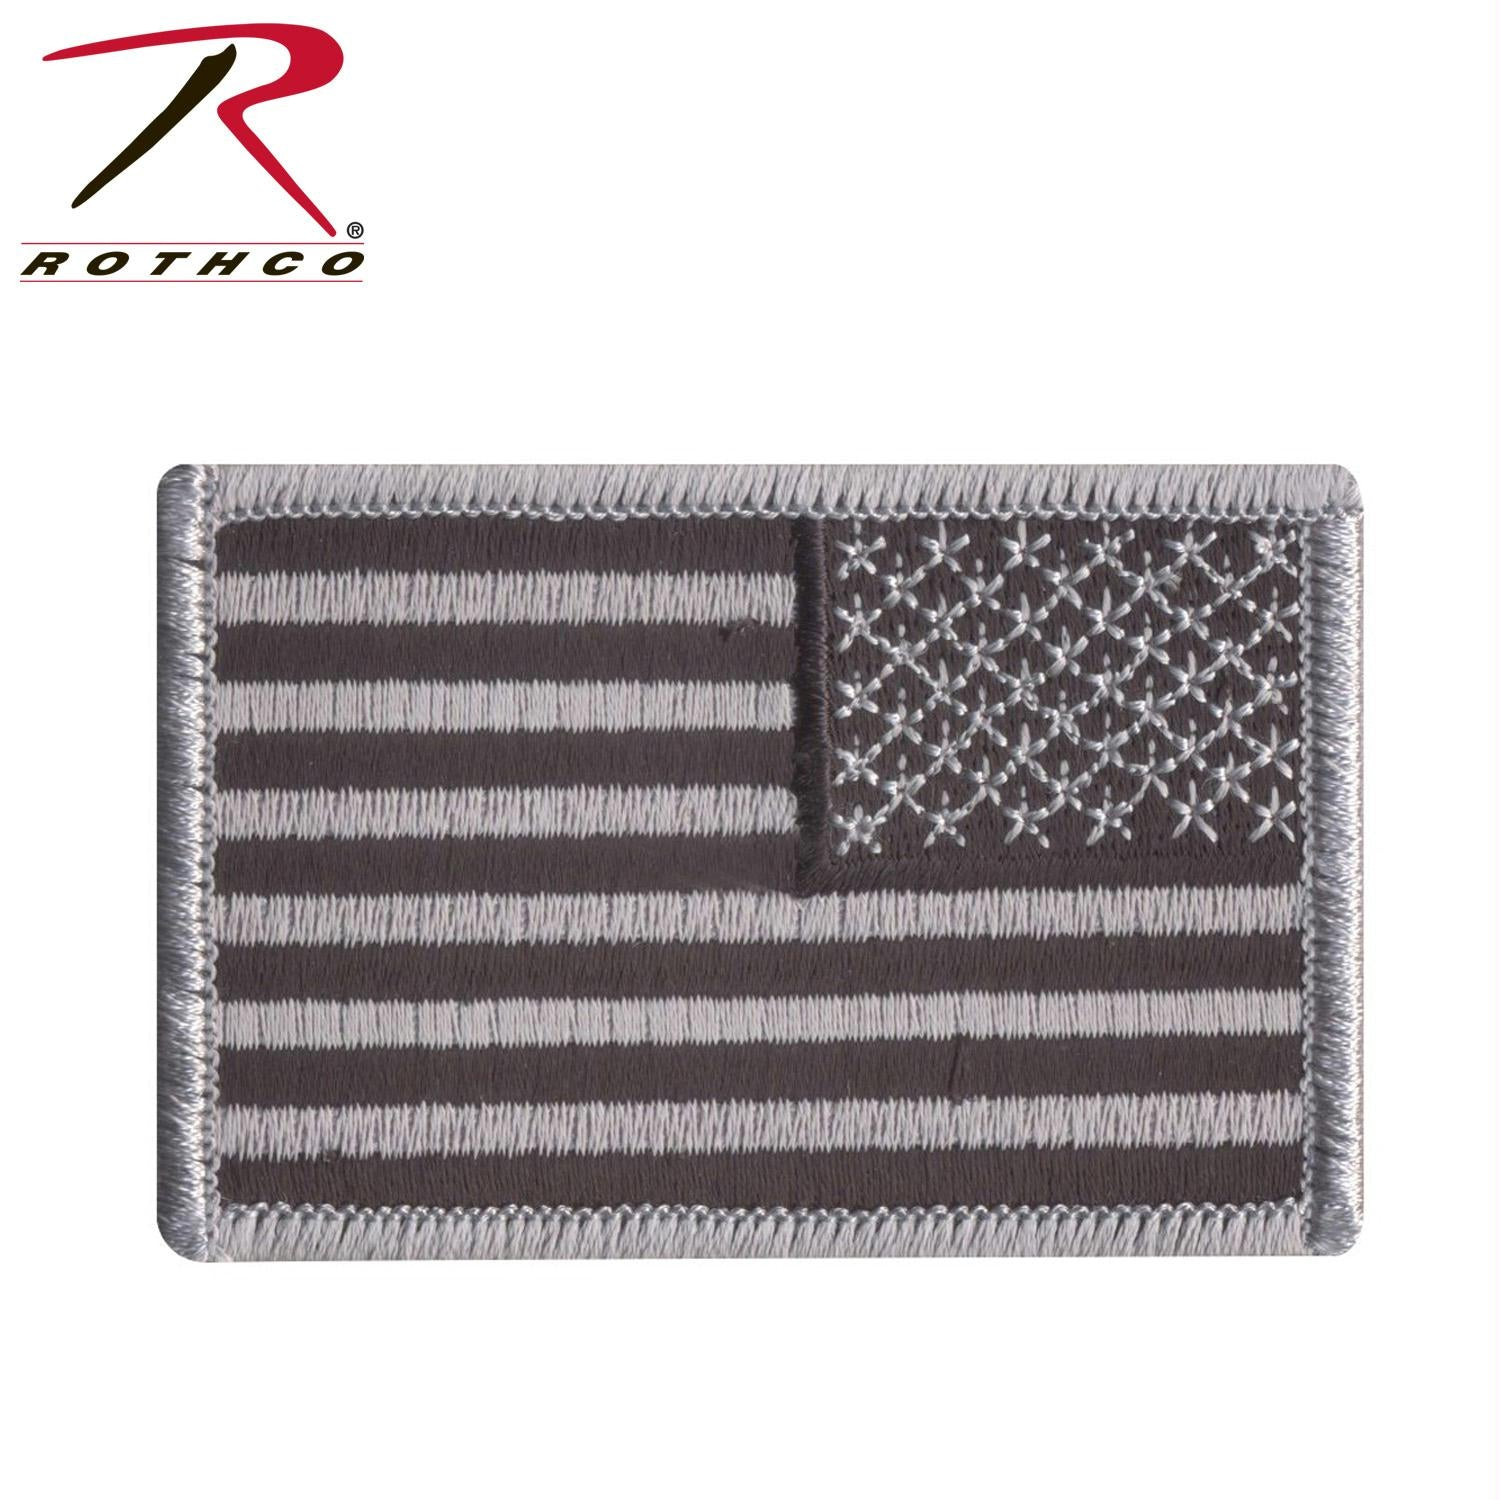 Rothco Iron On / Sew On Embroidered US Flag Patch - Black / Silver / Reverse